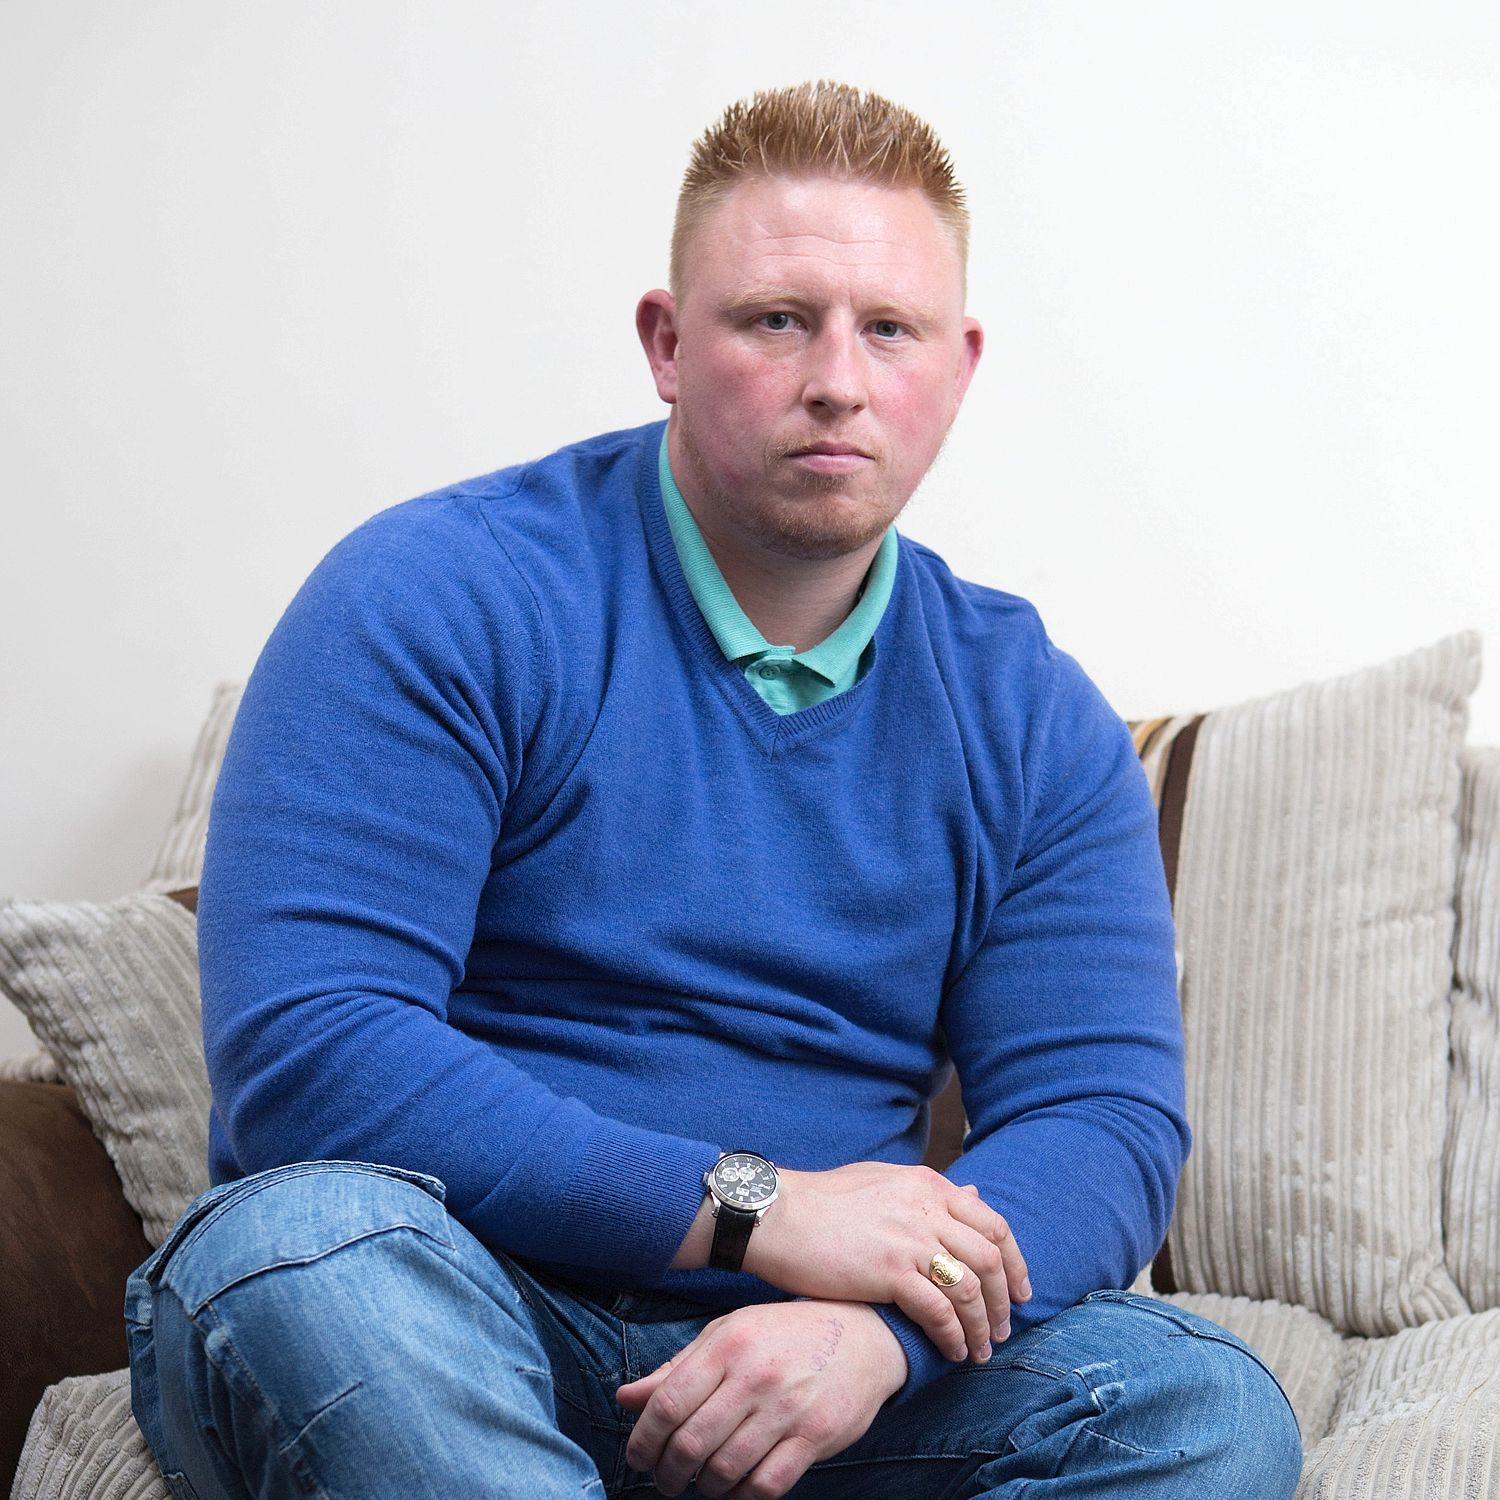 Three Guys Whose Lives Were Almost Ruined By Steroids Speak Out 05 24023922 0c933e 2574523a